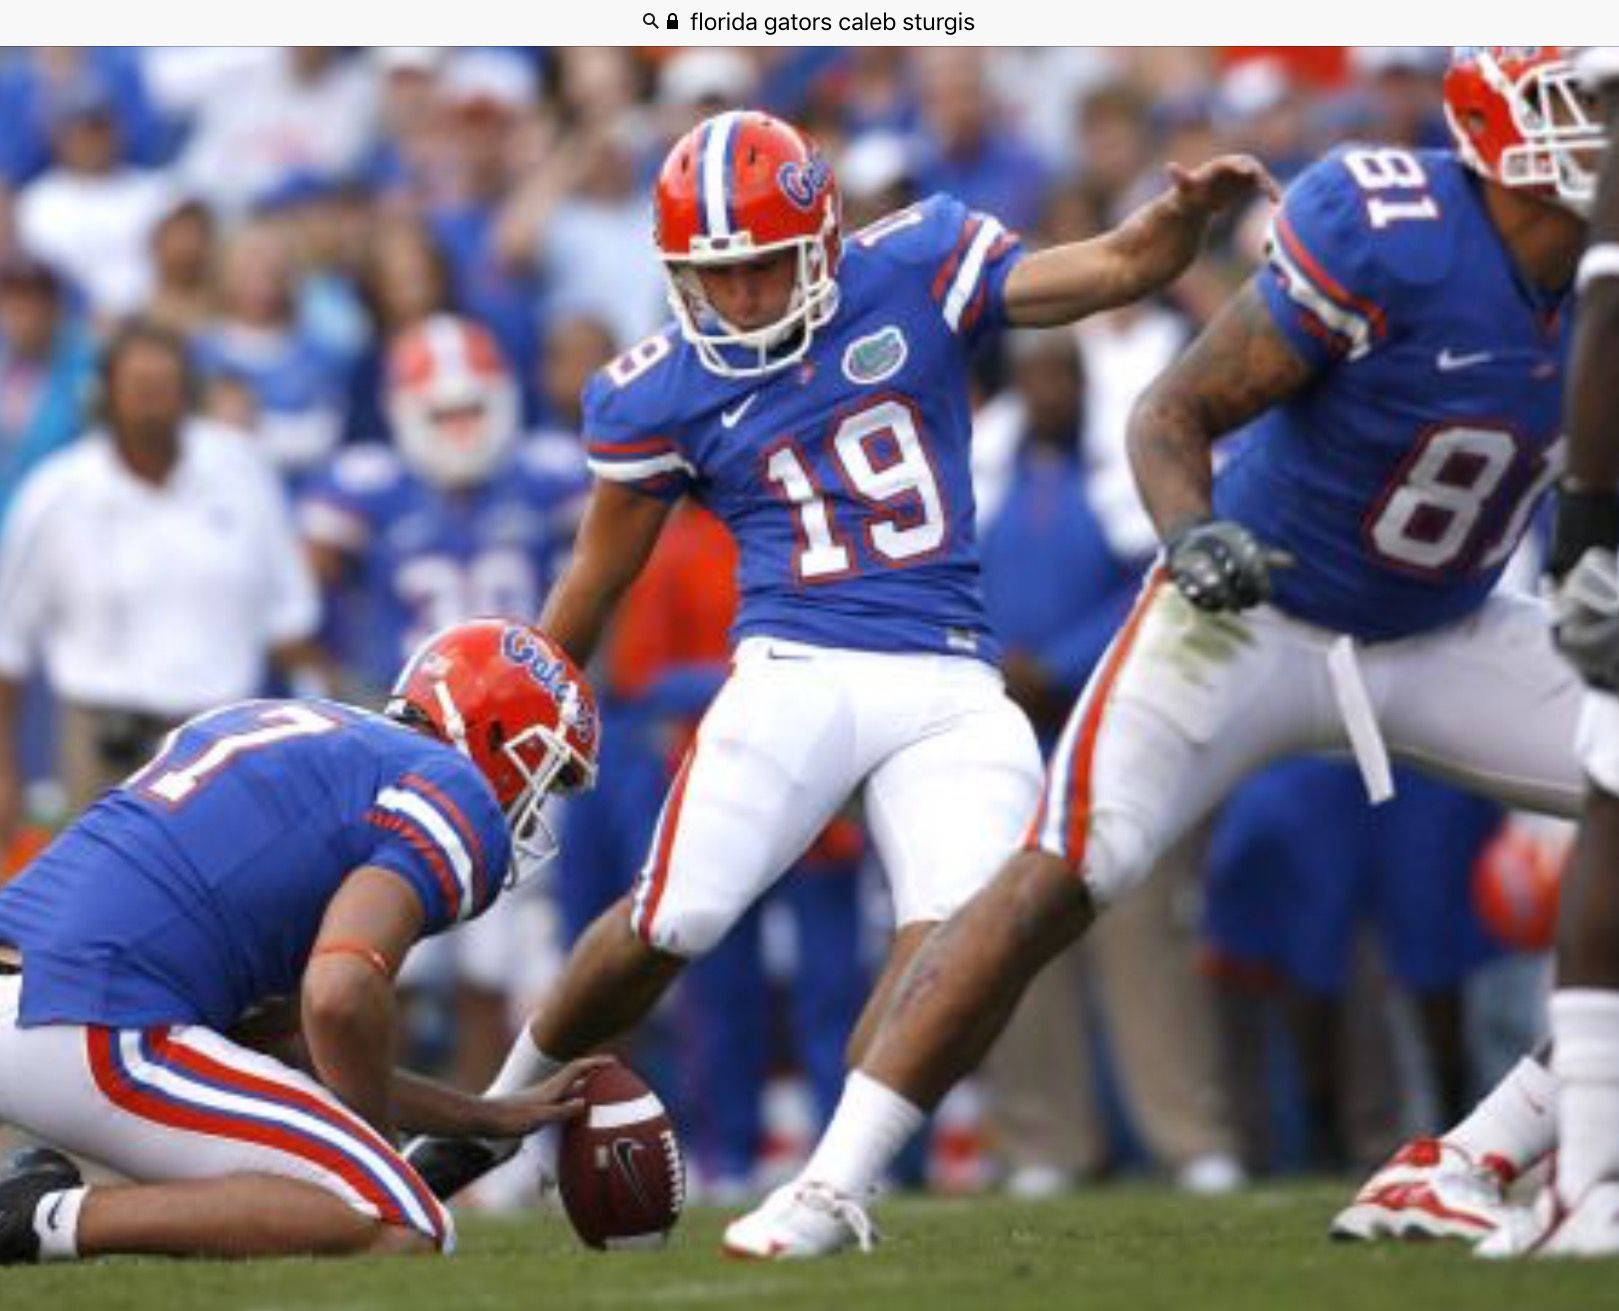 Pin by Den on The University of Florida Fighting Gators